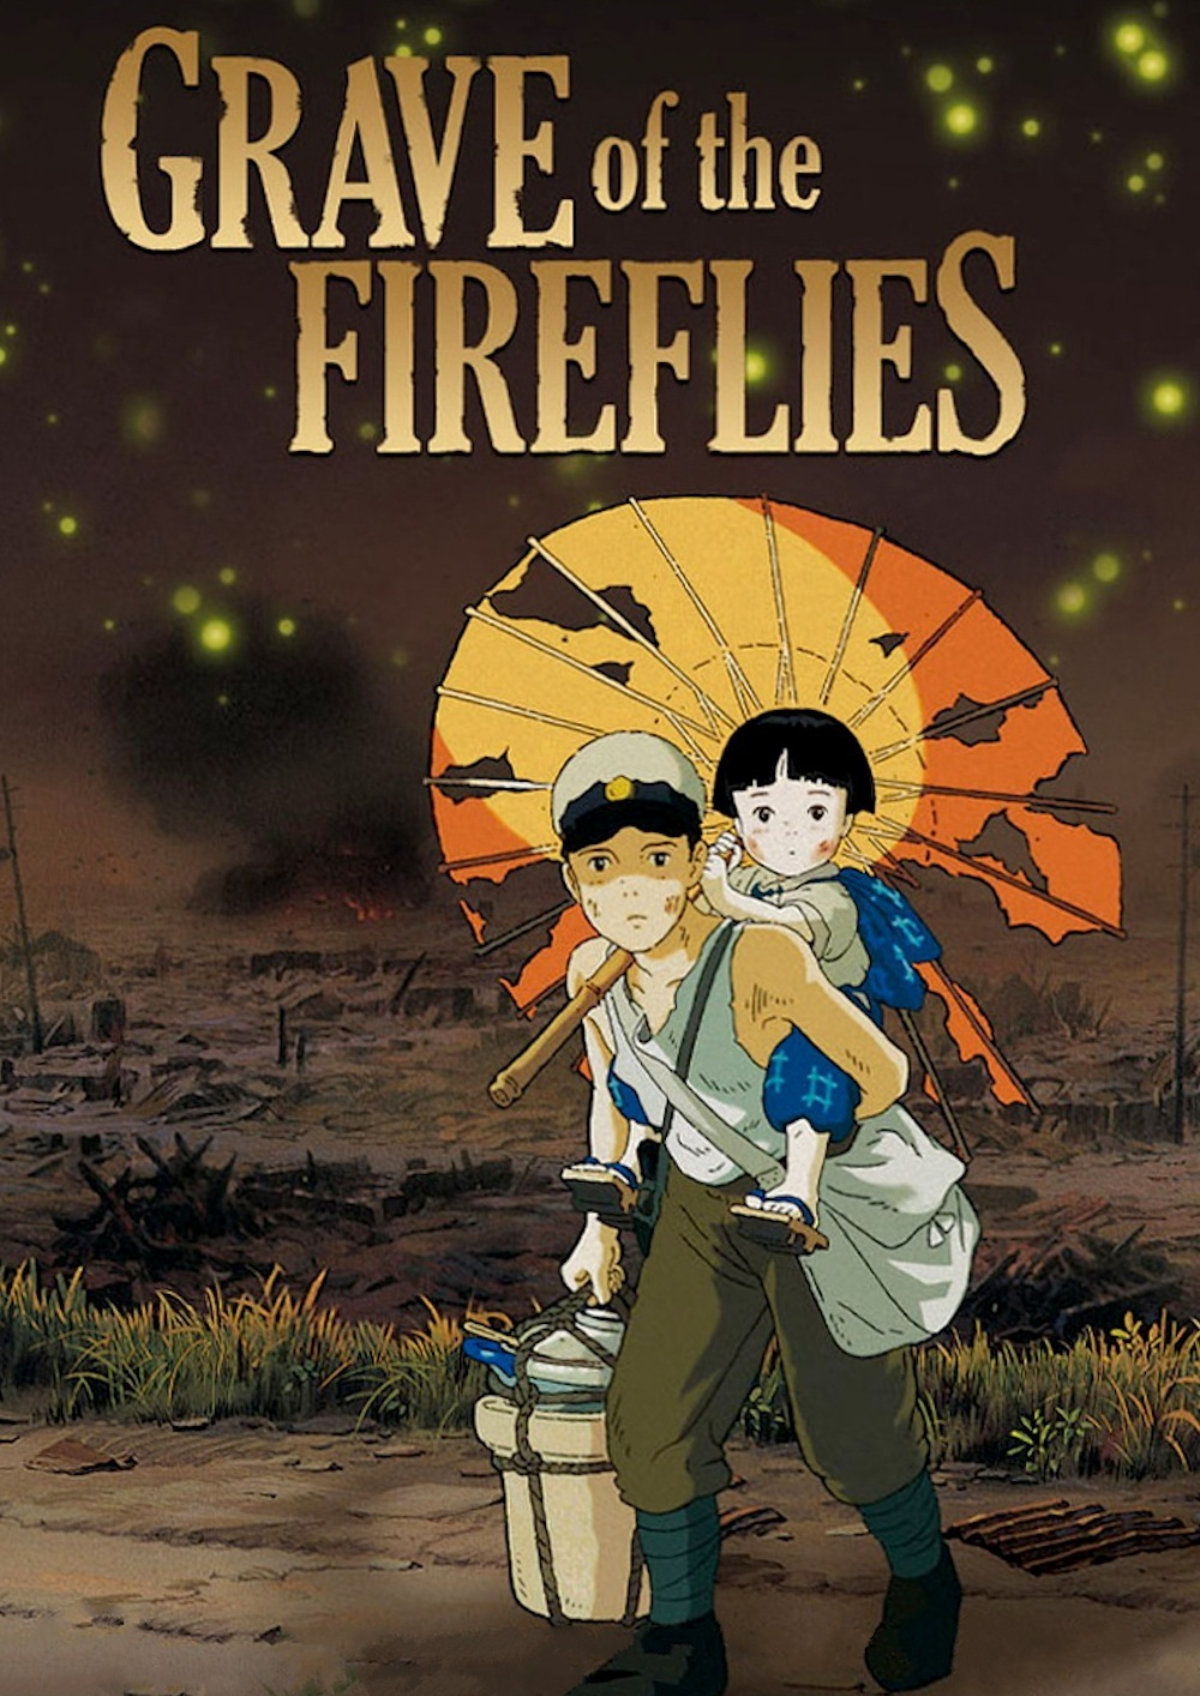 'Grave of the Fireflies (Hotaru no haka)' movie poster